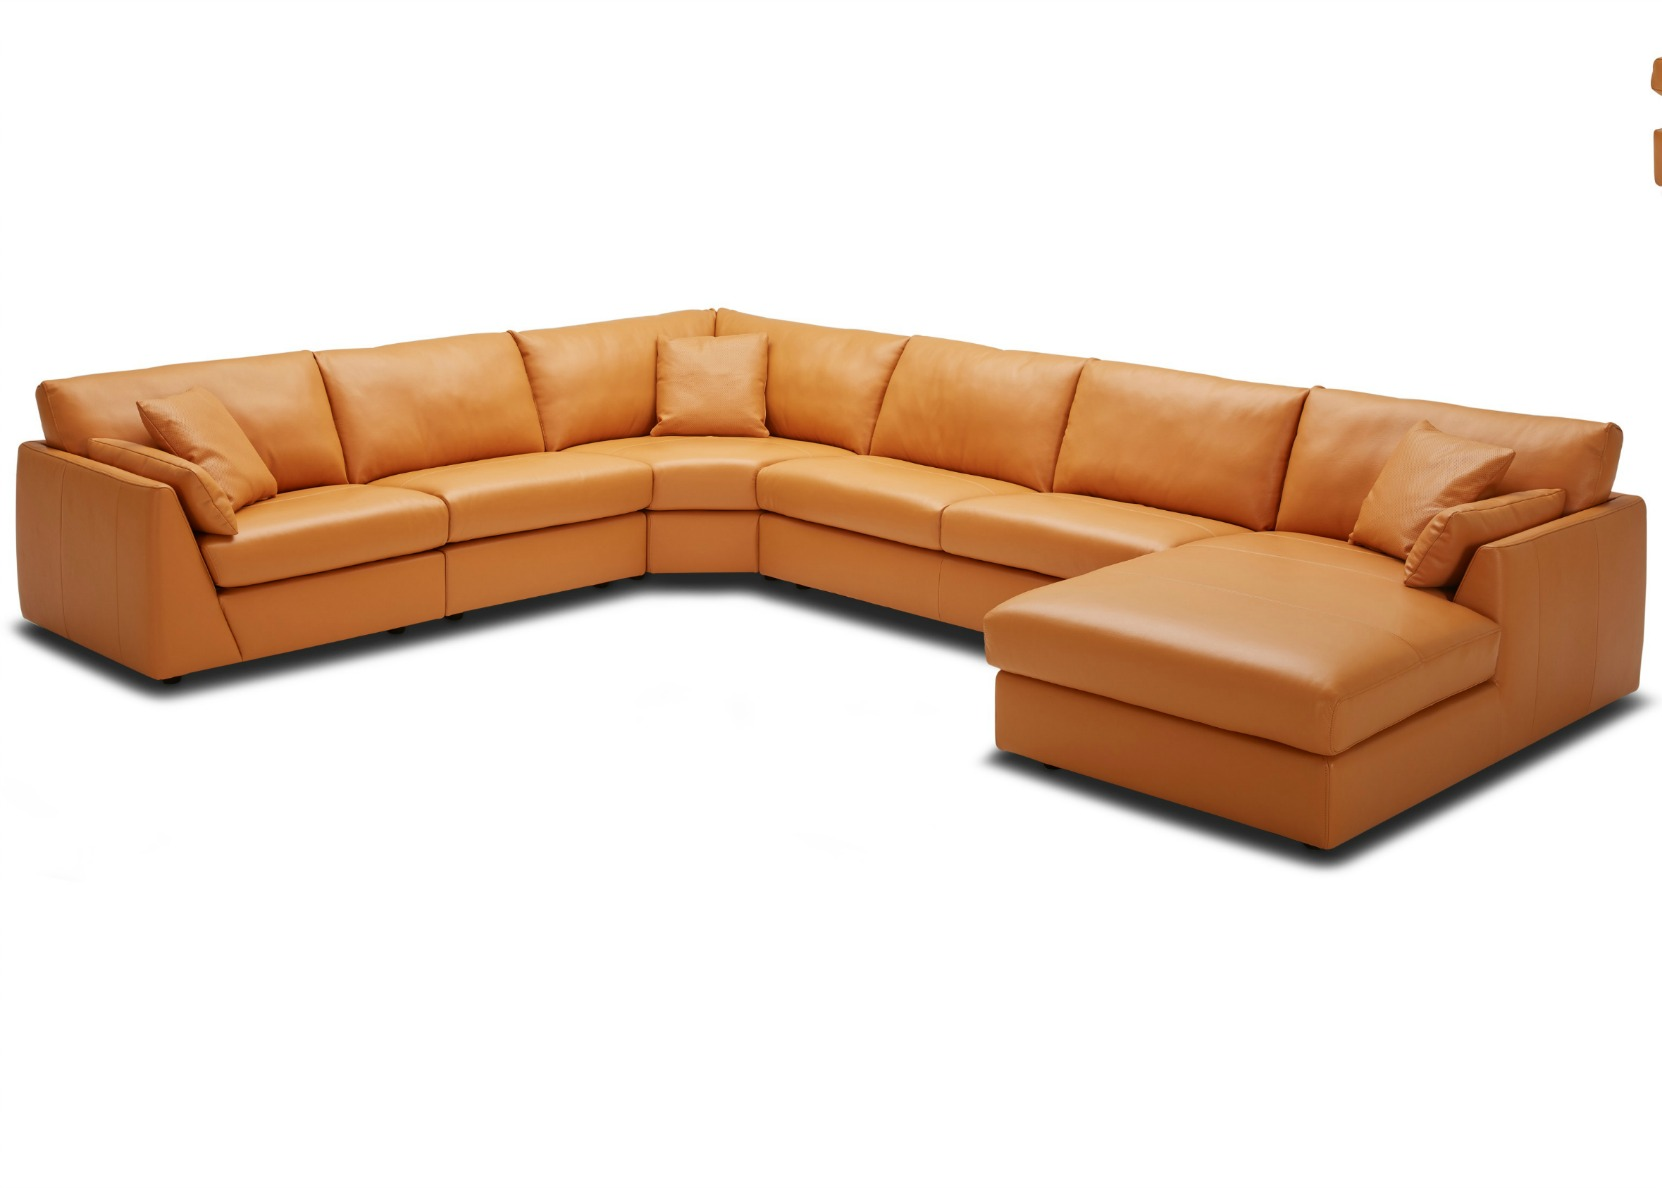 Tan Leather Sectional Chaise